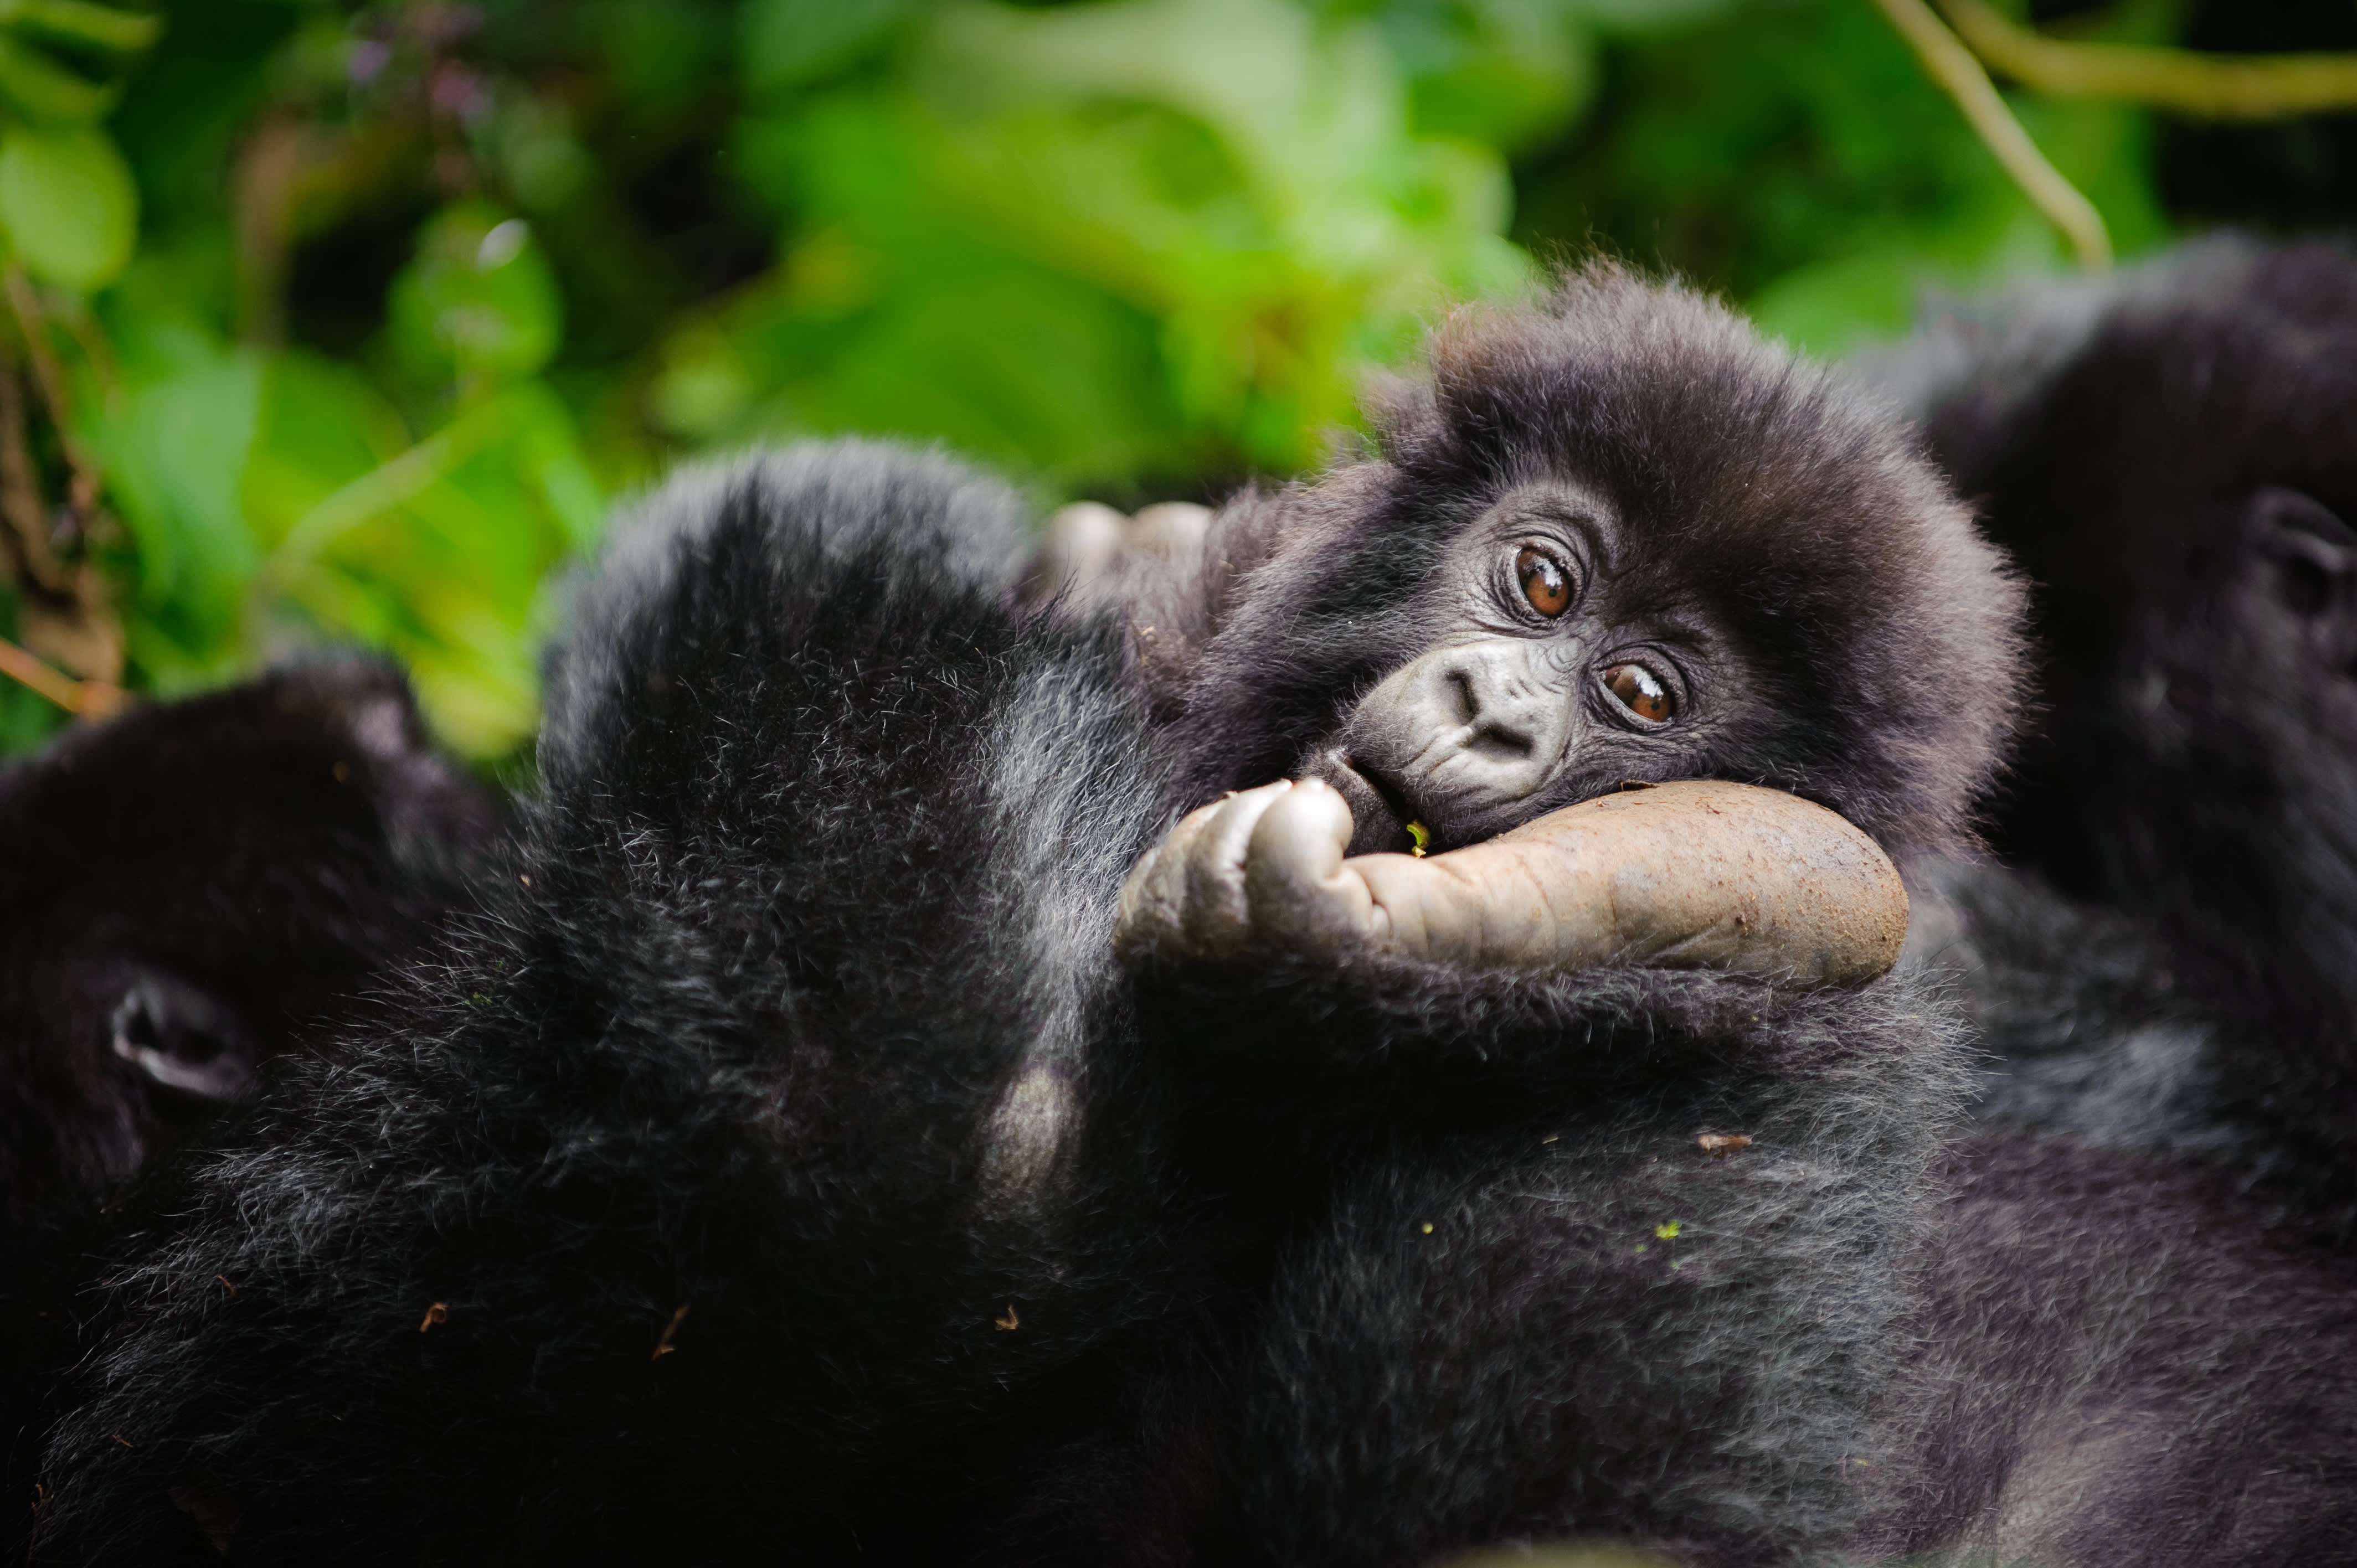 This is one of the few places in the world to see gorillas in the wild